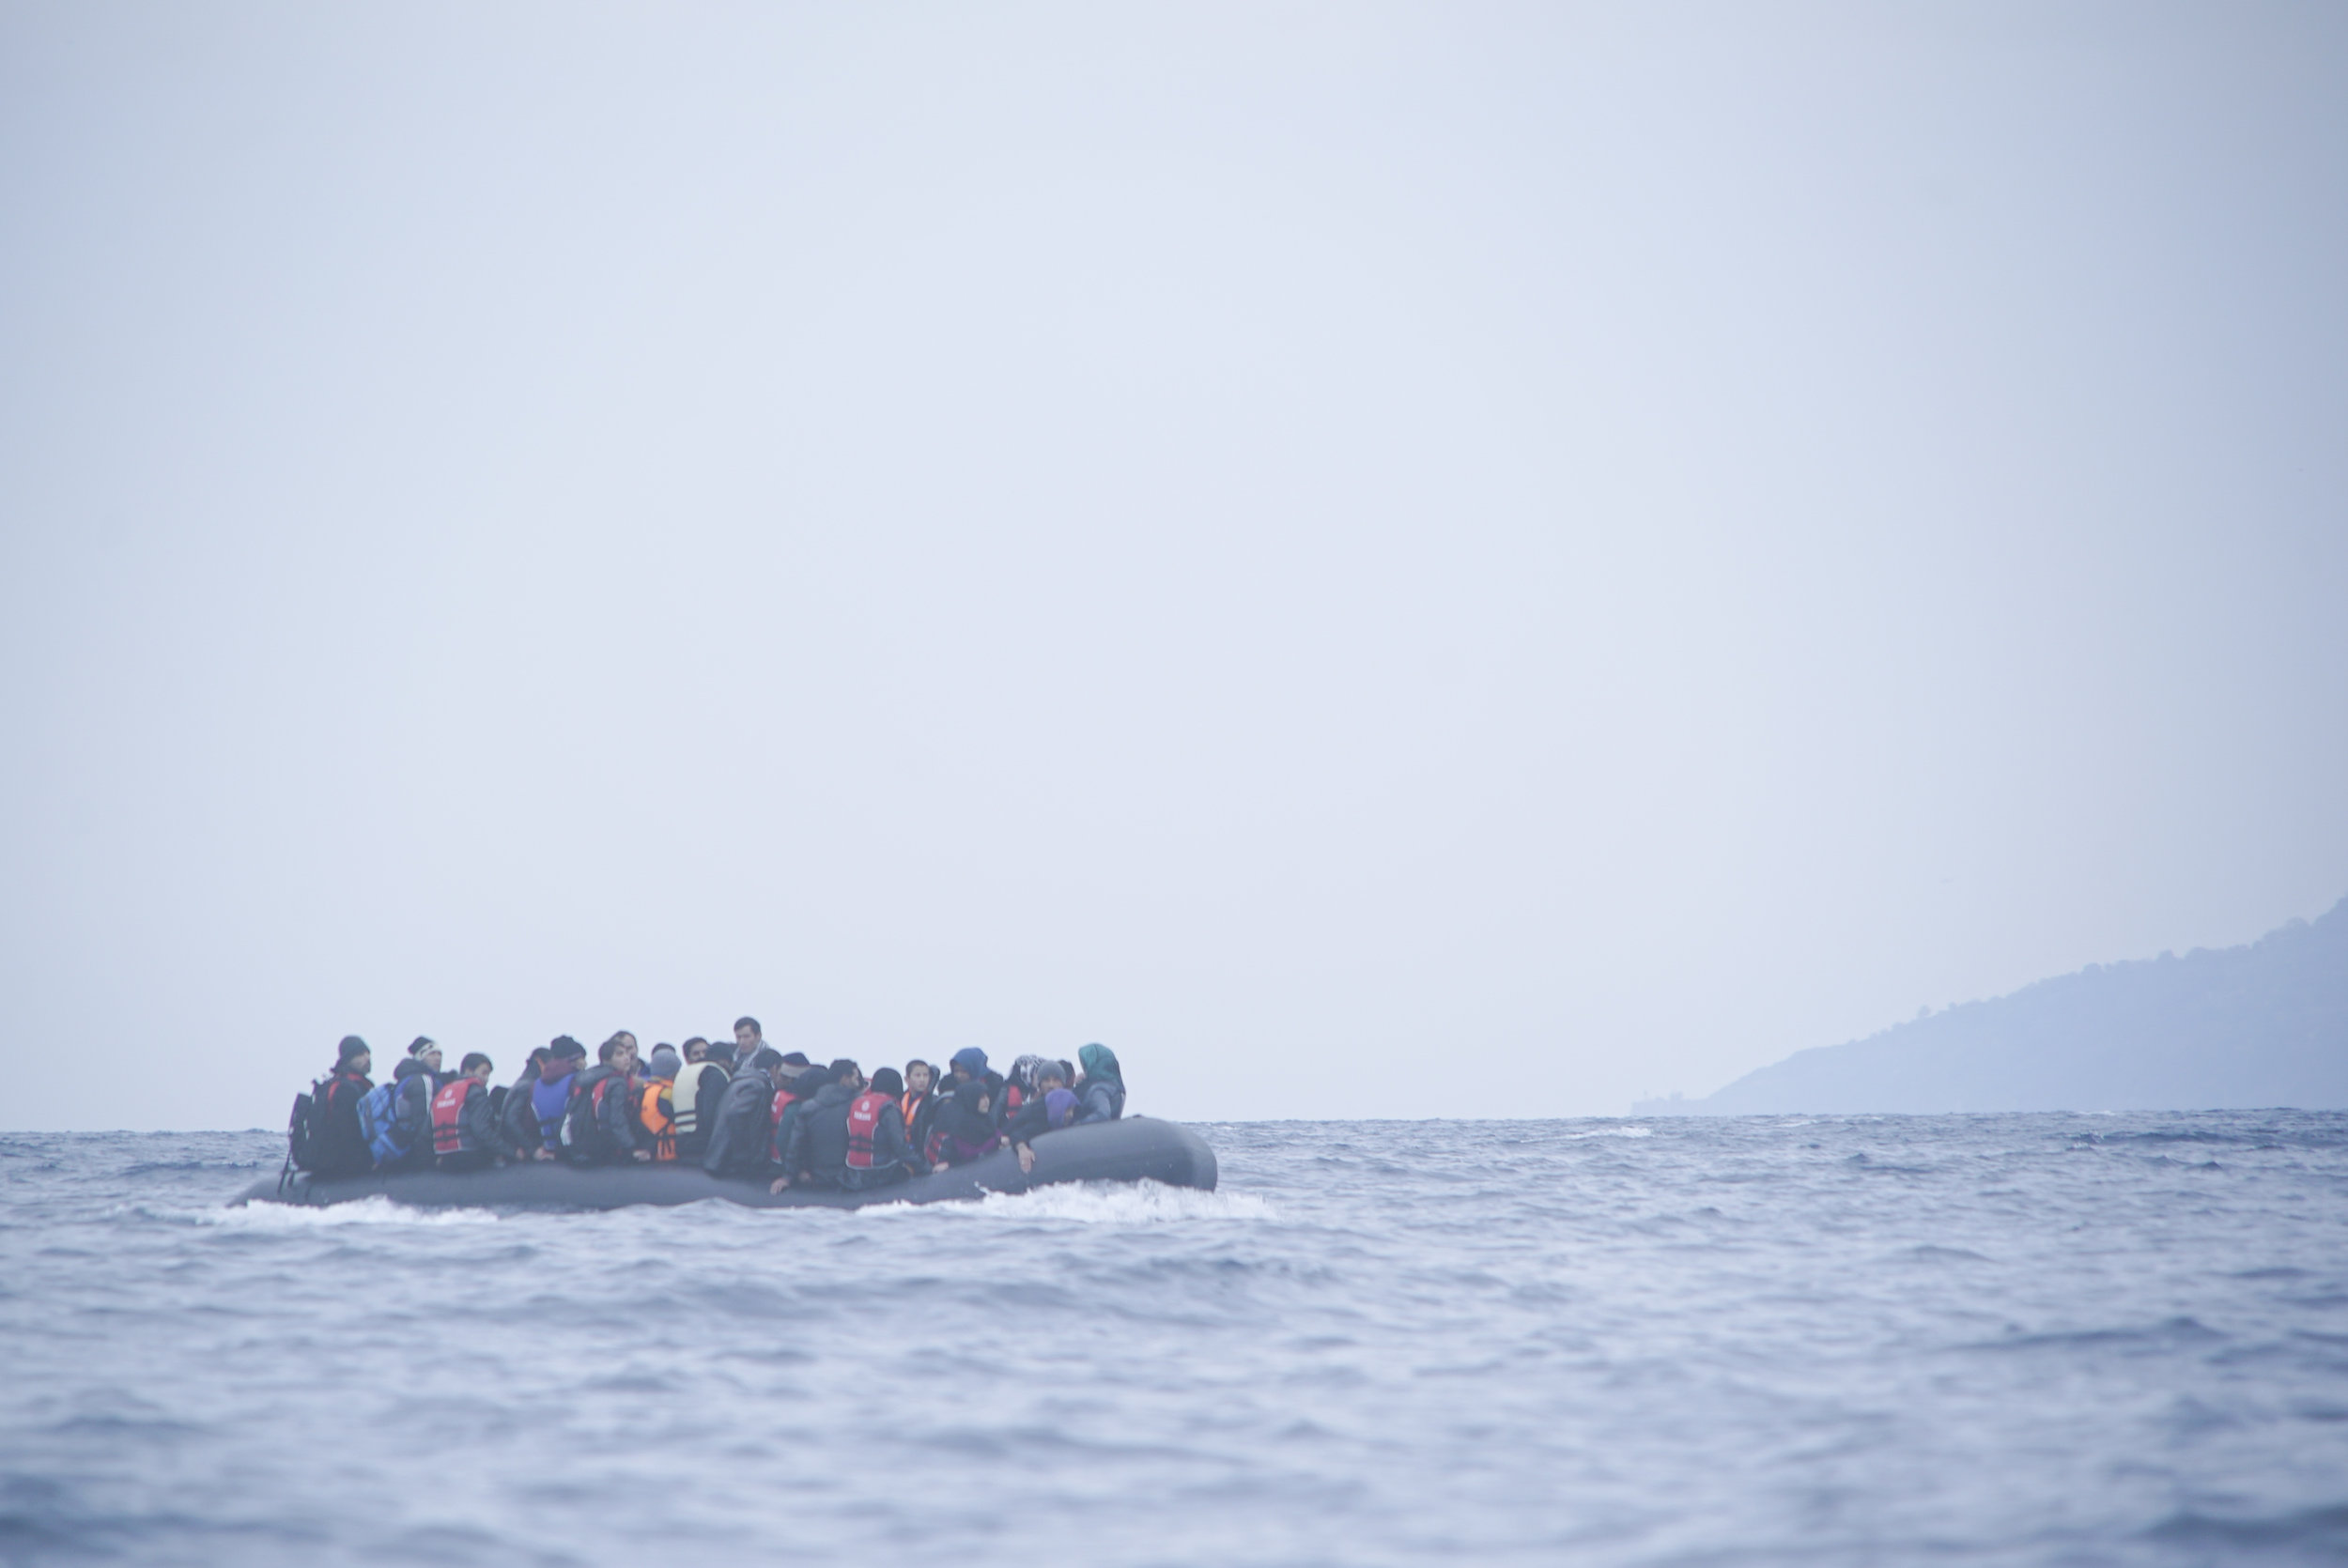 Refugees attempt to cross the Mediterranean sea to reach Greece, a member of the European Union, in 2016. (Wikimedia Commons)